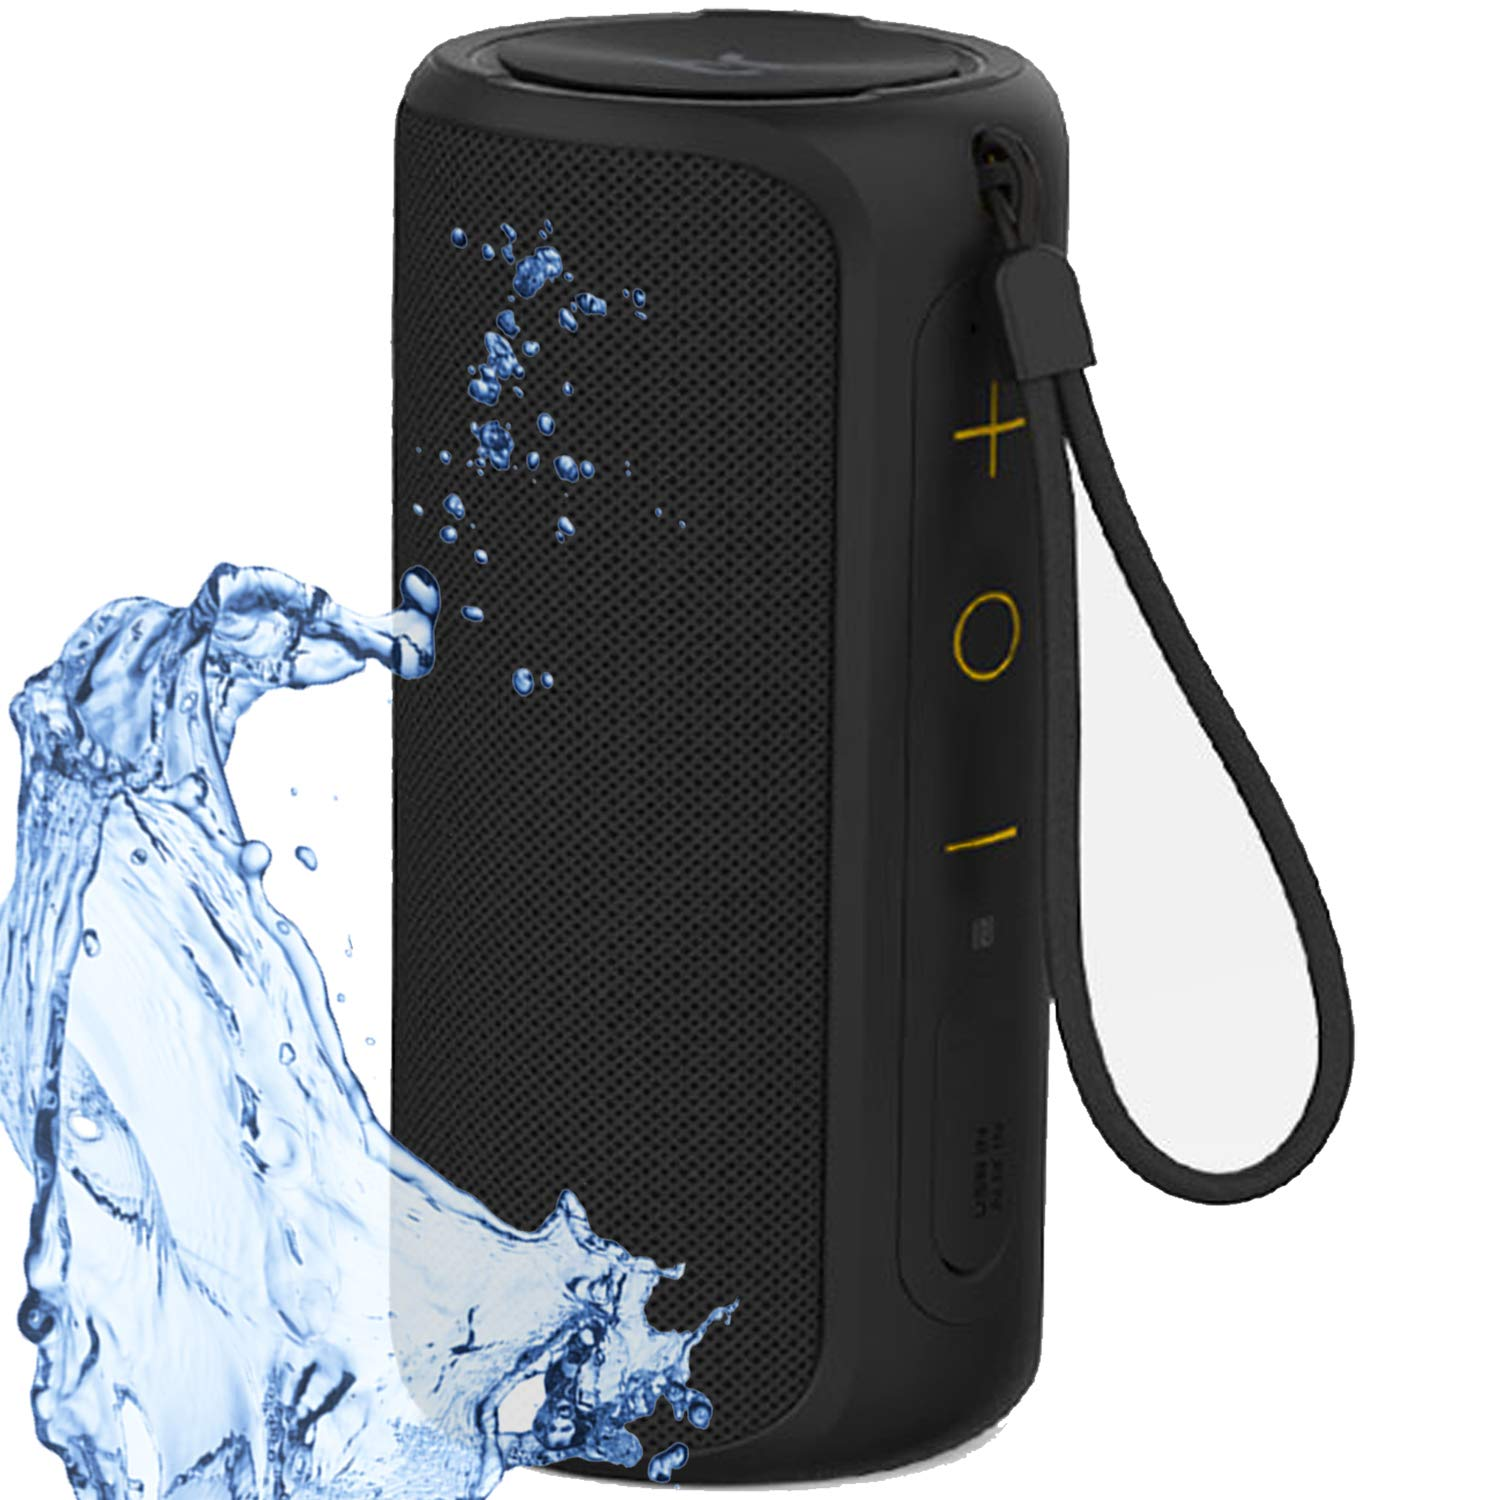 Aneerx Portable Bluetooth Speakers Ipx7 Waterproof Dustproo